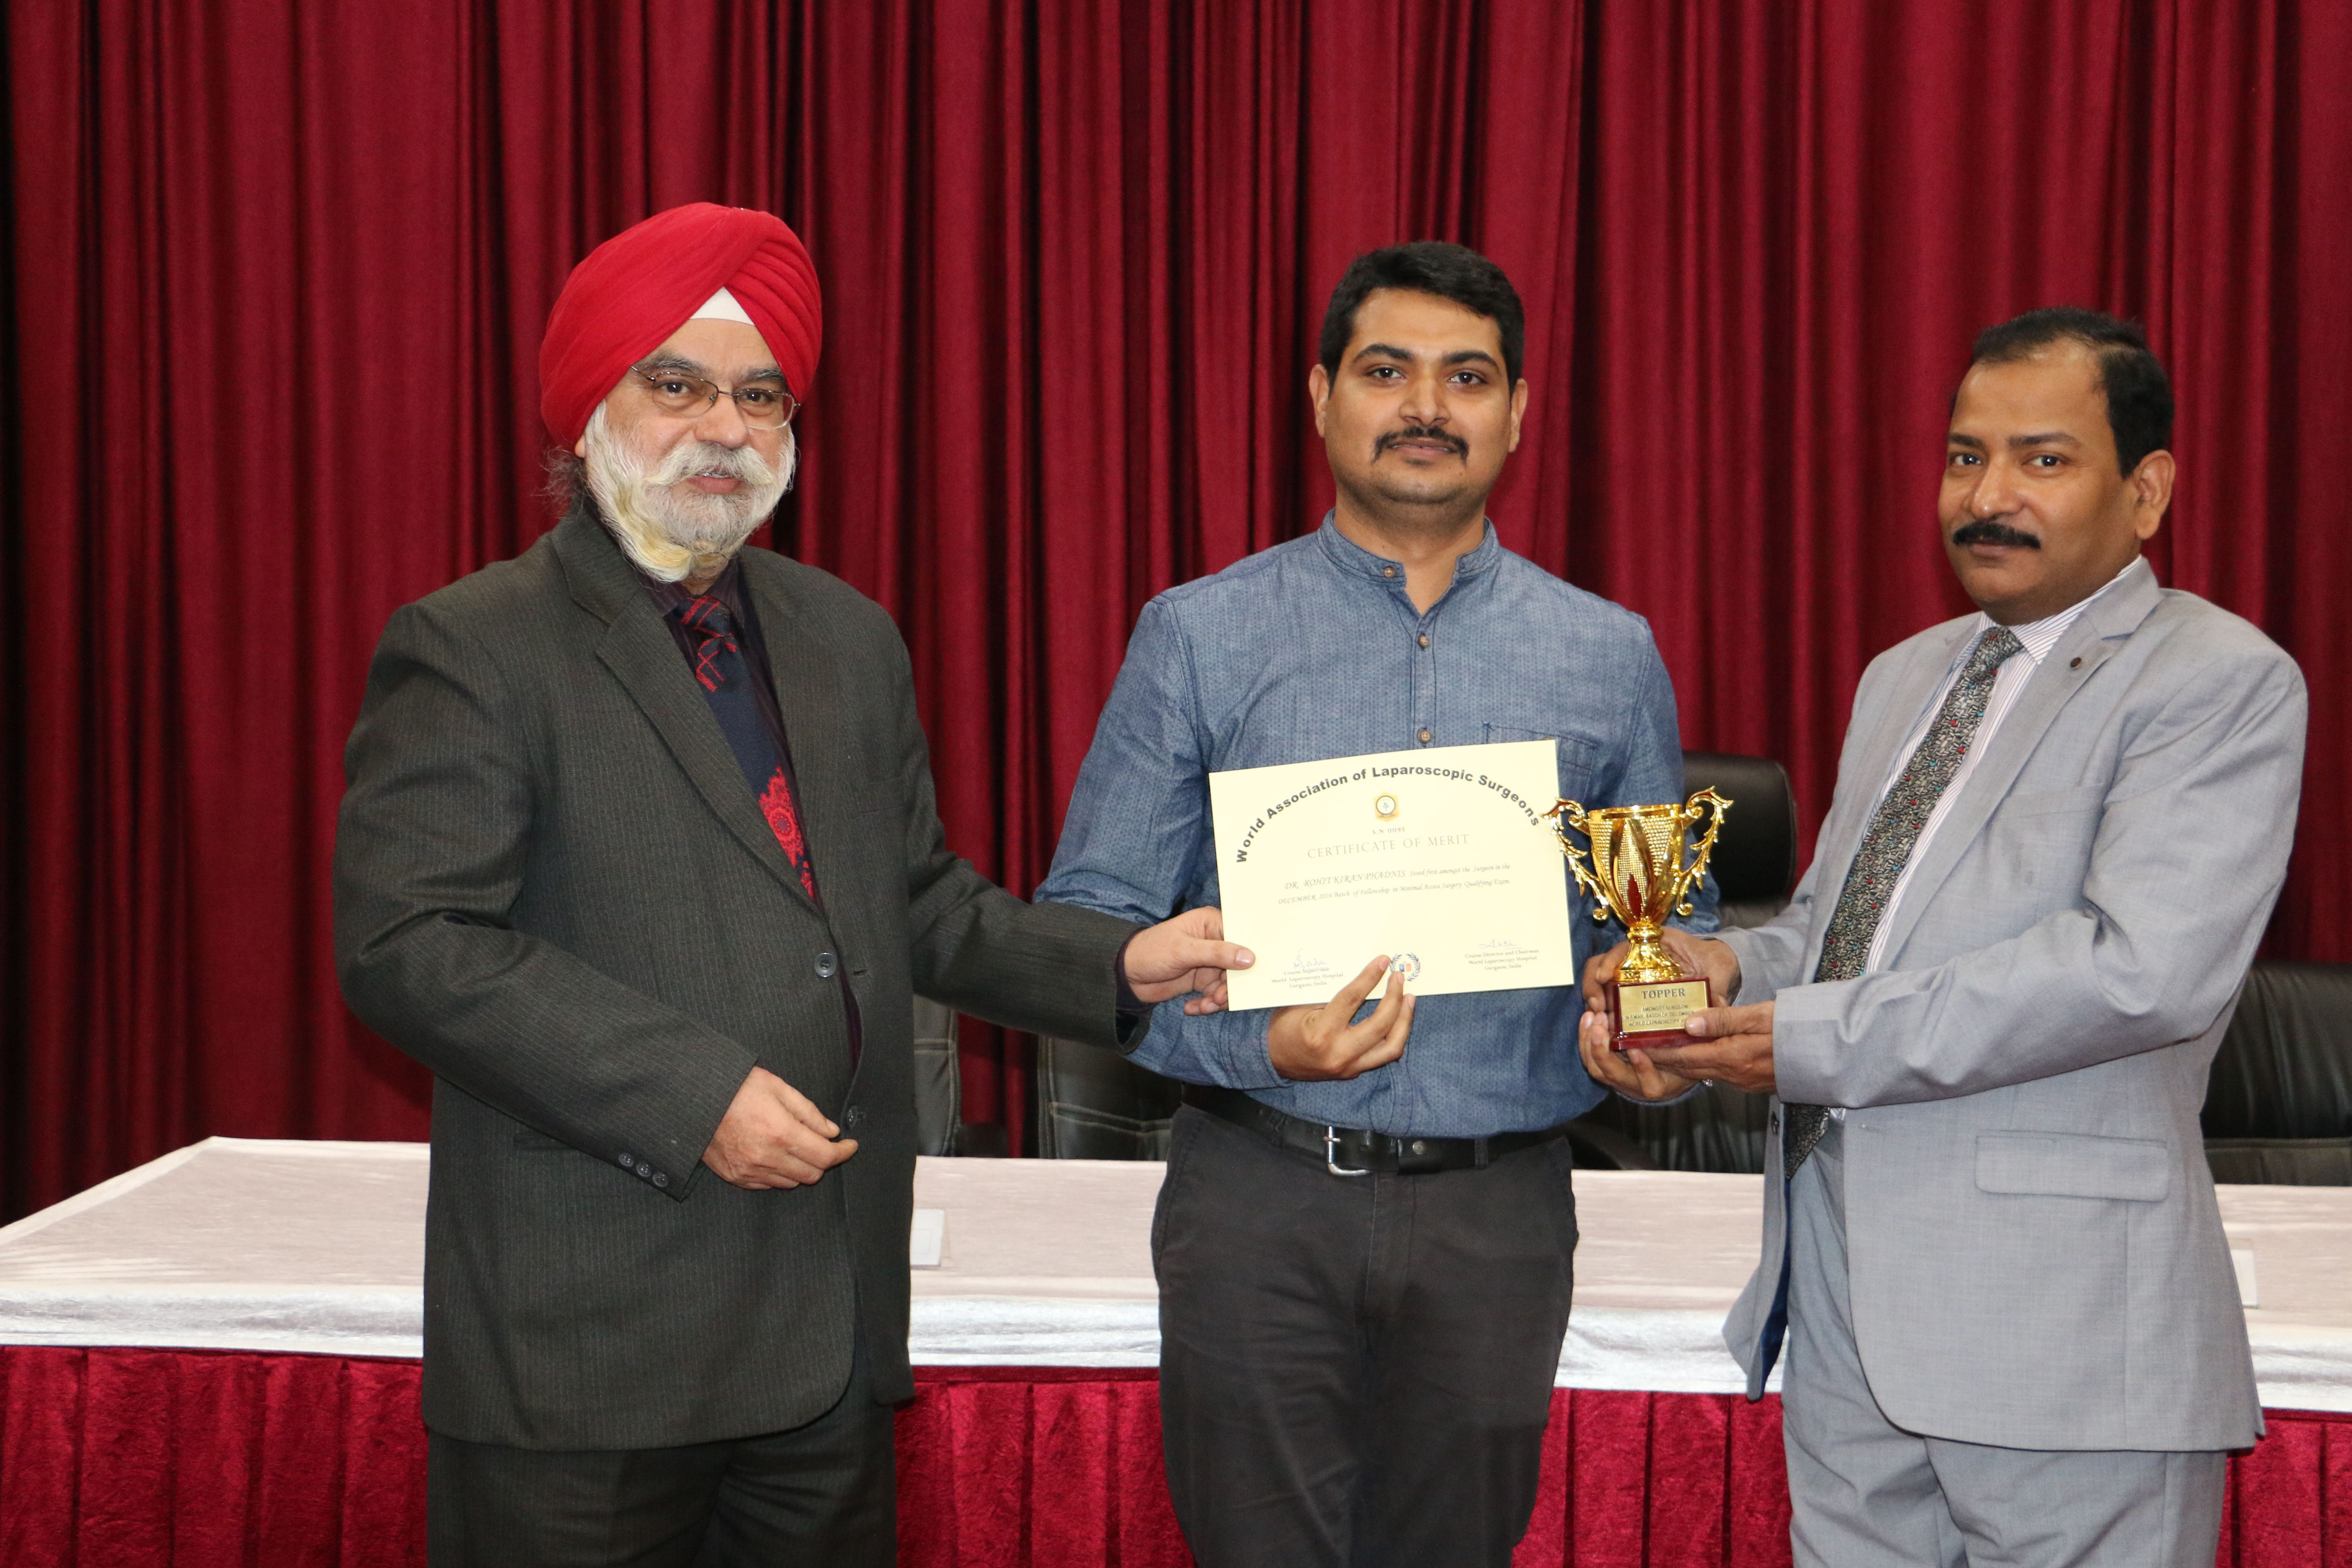 Dr. Rohit Kiran Phadnis receiving certificate of  Fellowship in Minimal Access Surgery at World Laparoscopy Hospital. For more detail please log on to www.laparoscopyhospital.com